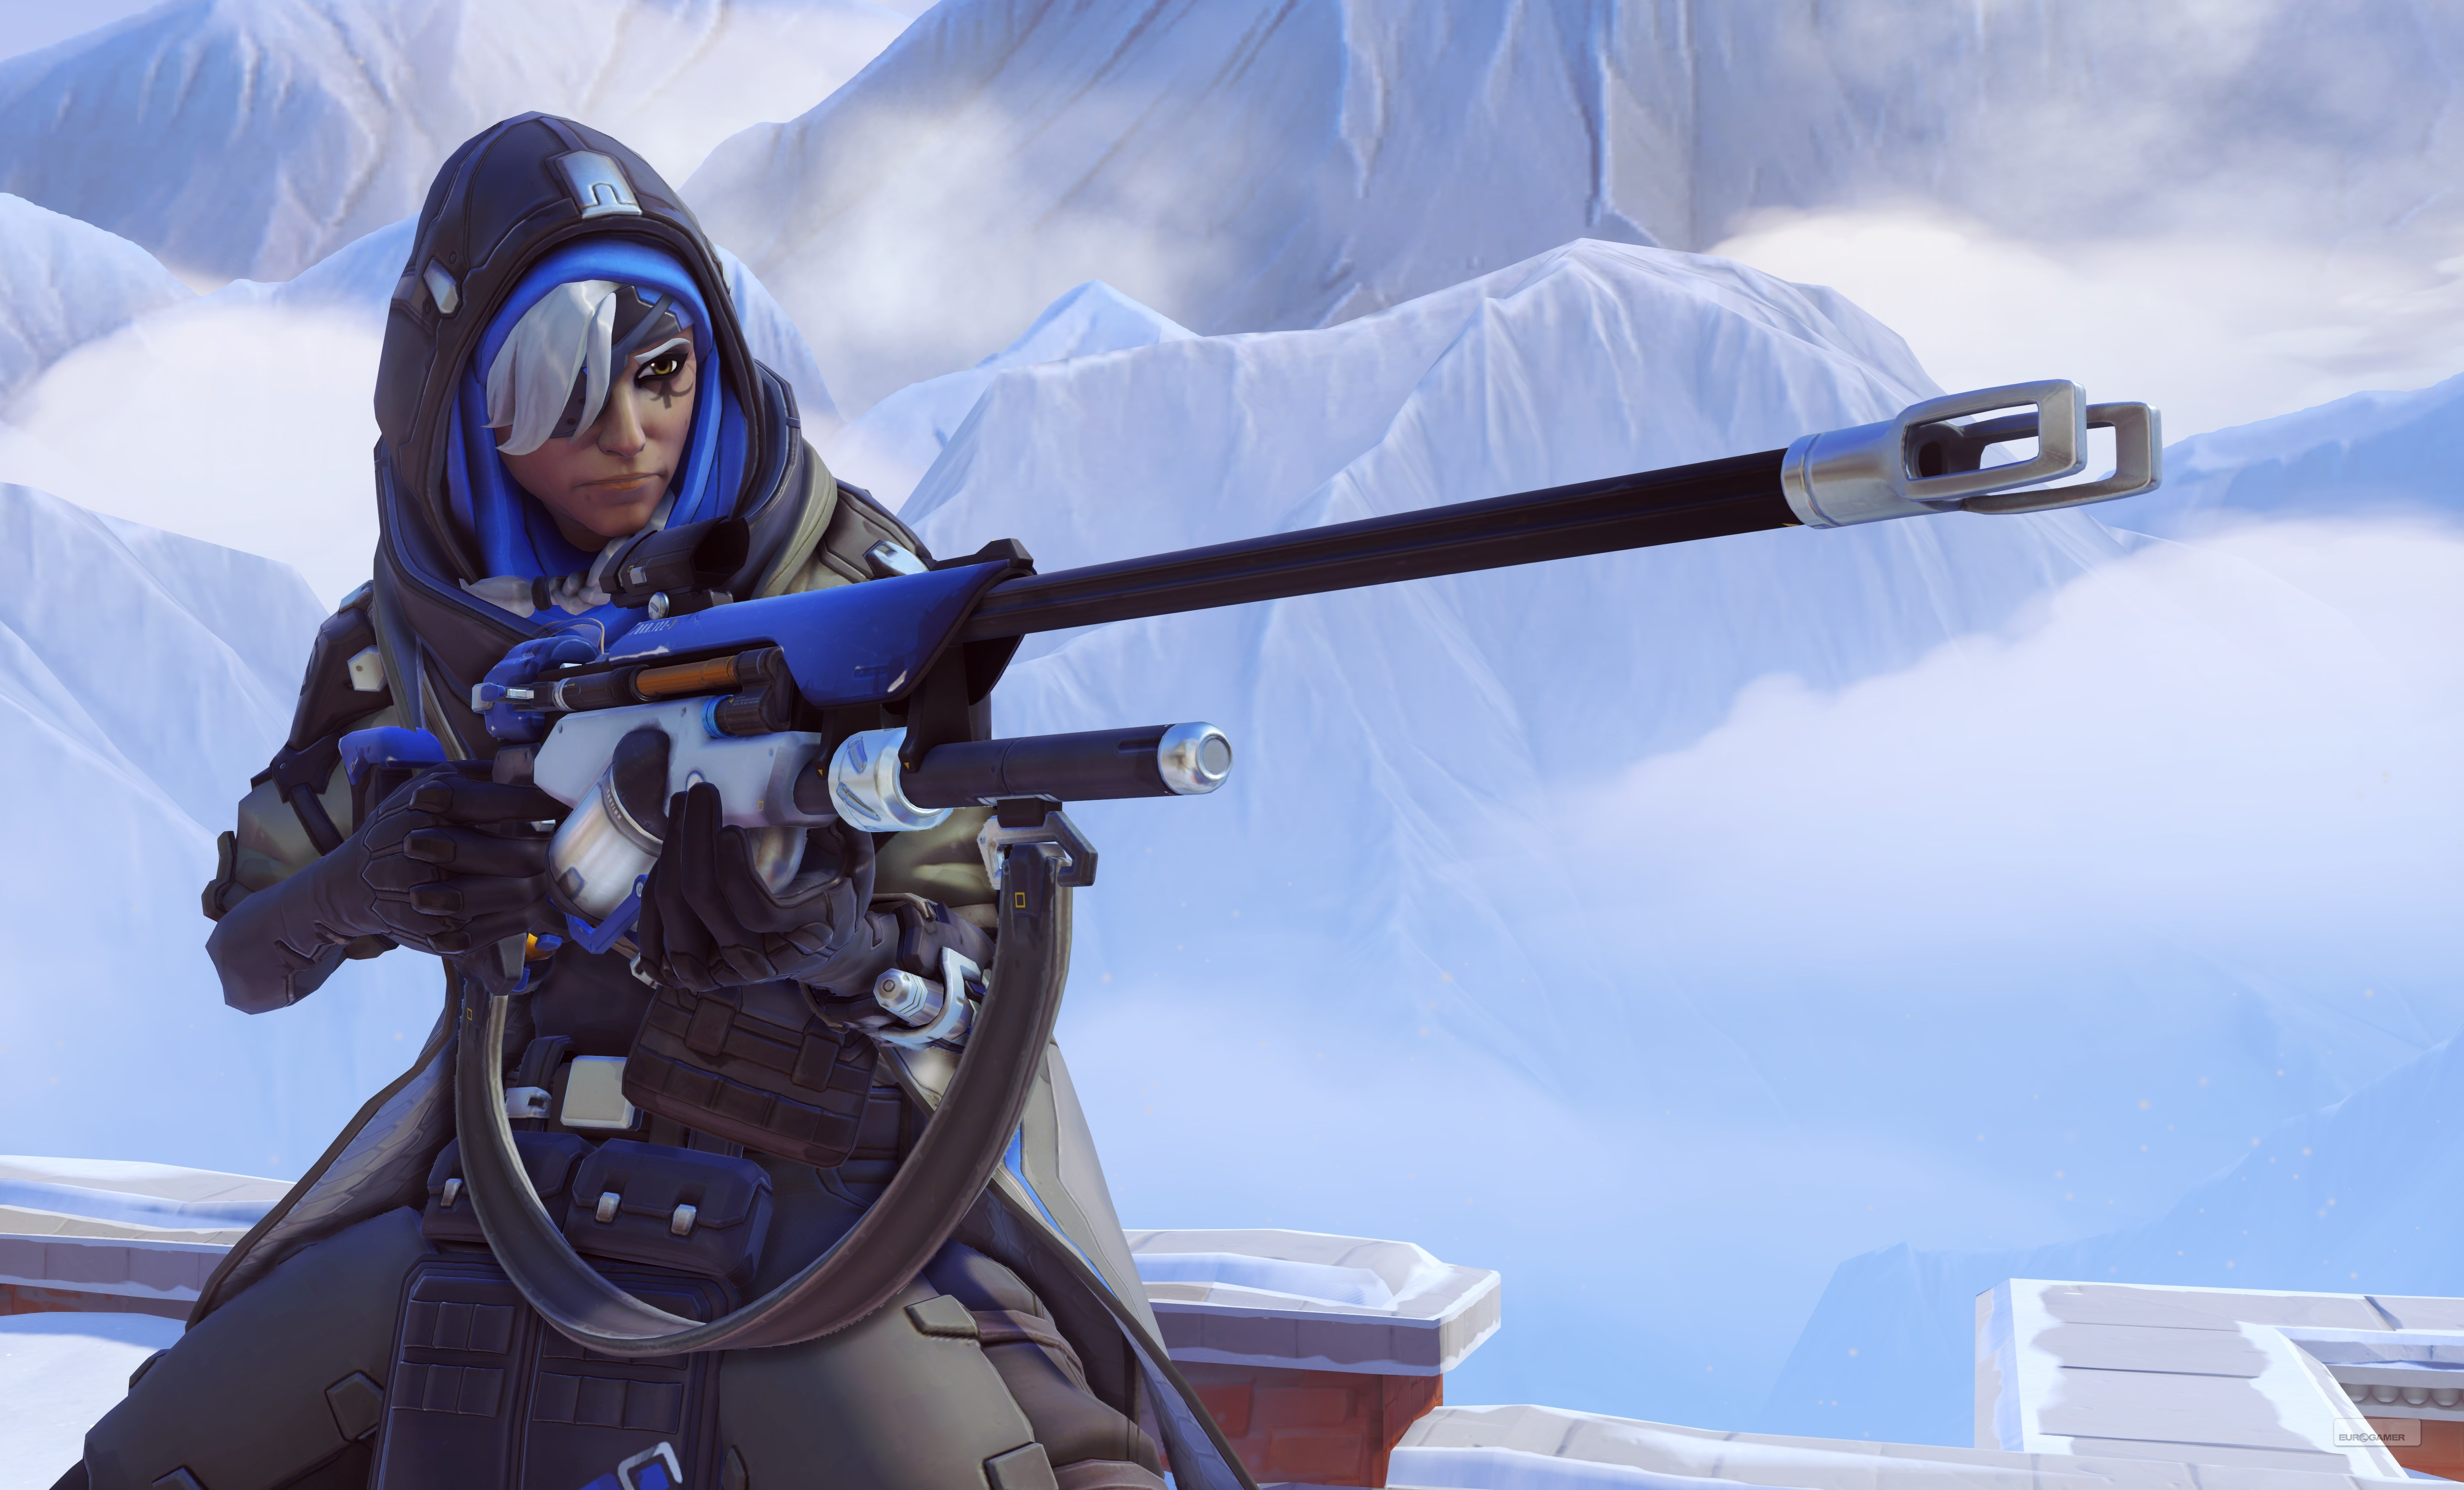 Overwatch - what do you think of its new hero?